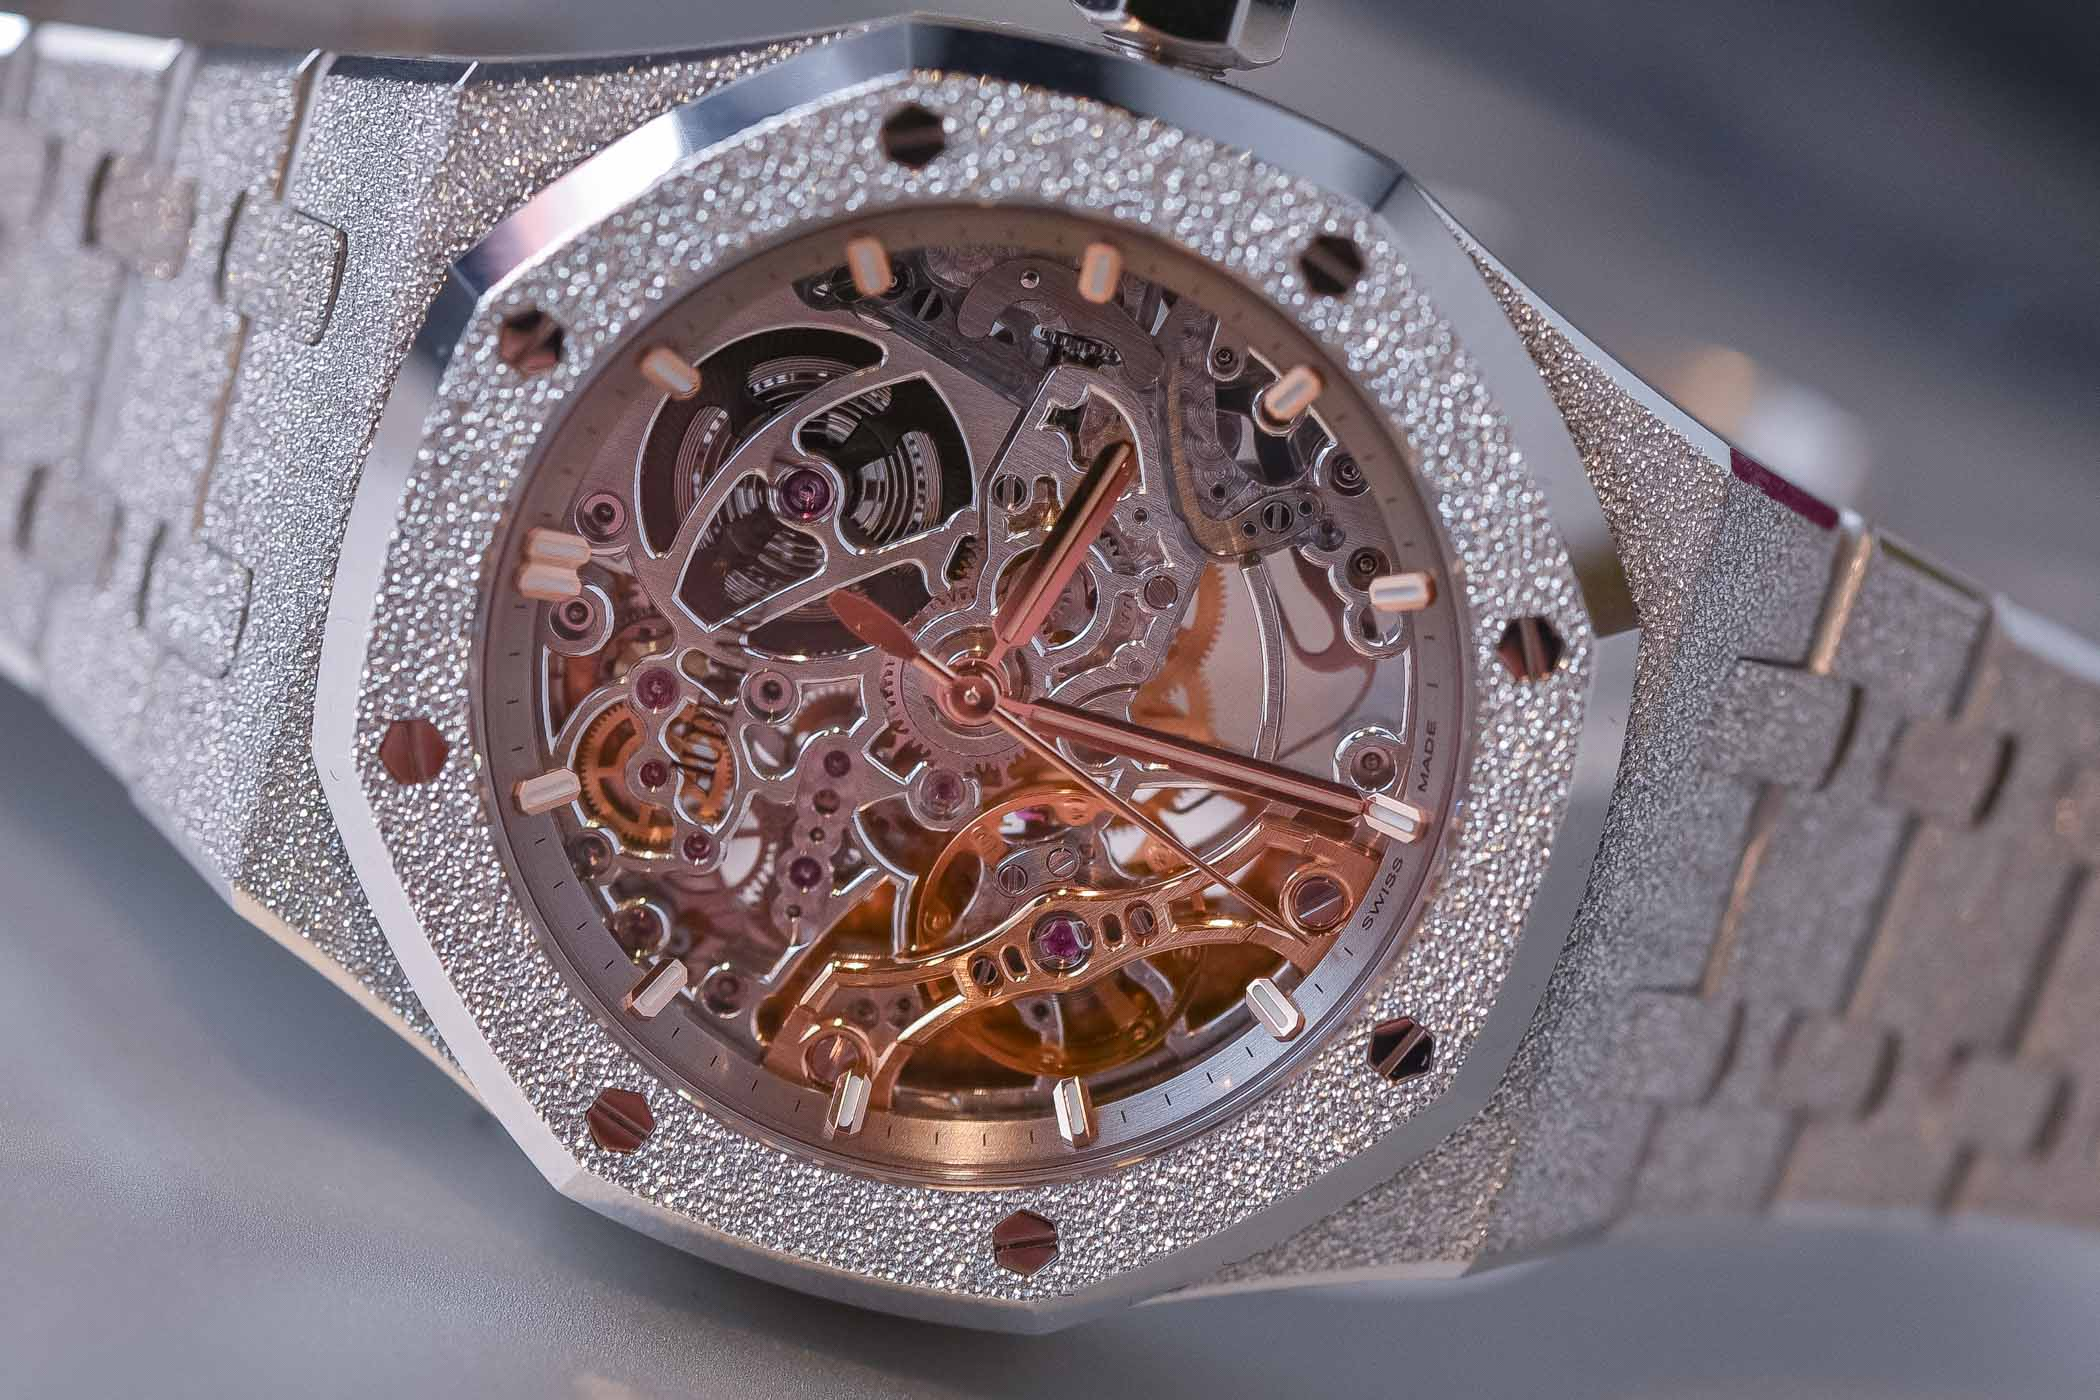 Audemars Piguet Royal Oak Double Balance Wheel Openworked 37mm Frosted Gold white - 15466BC.GG.1259BC.01